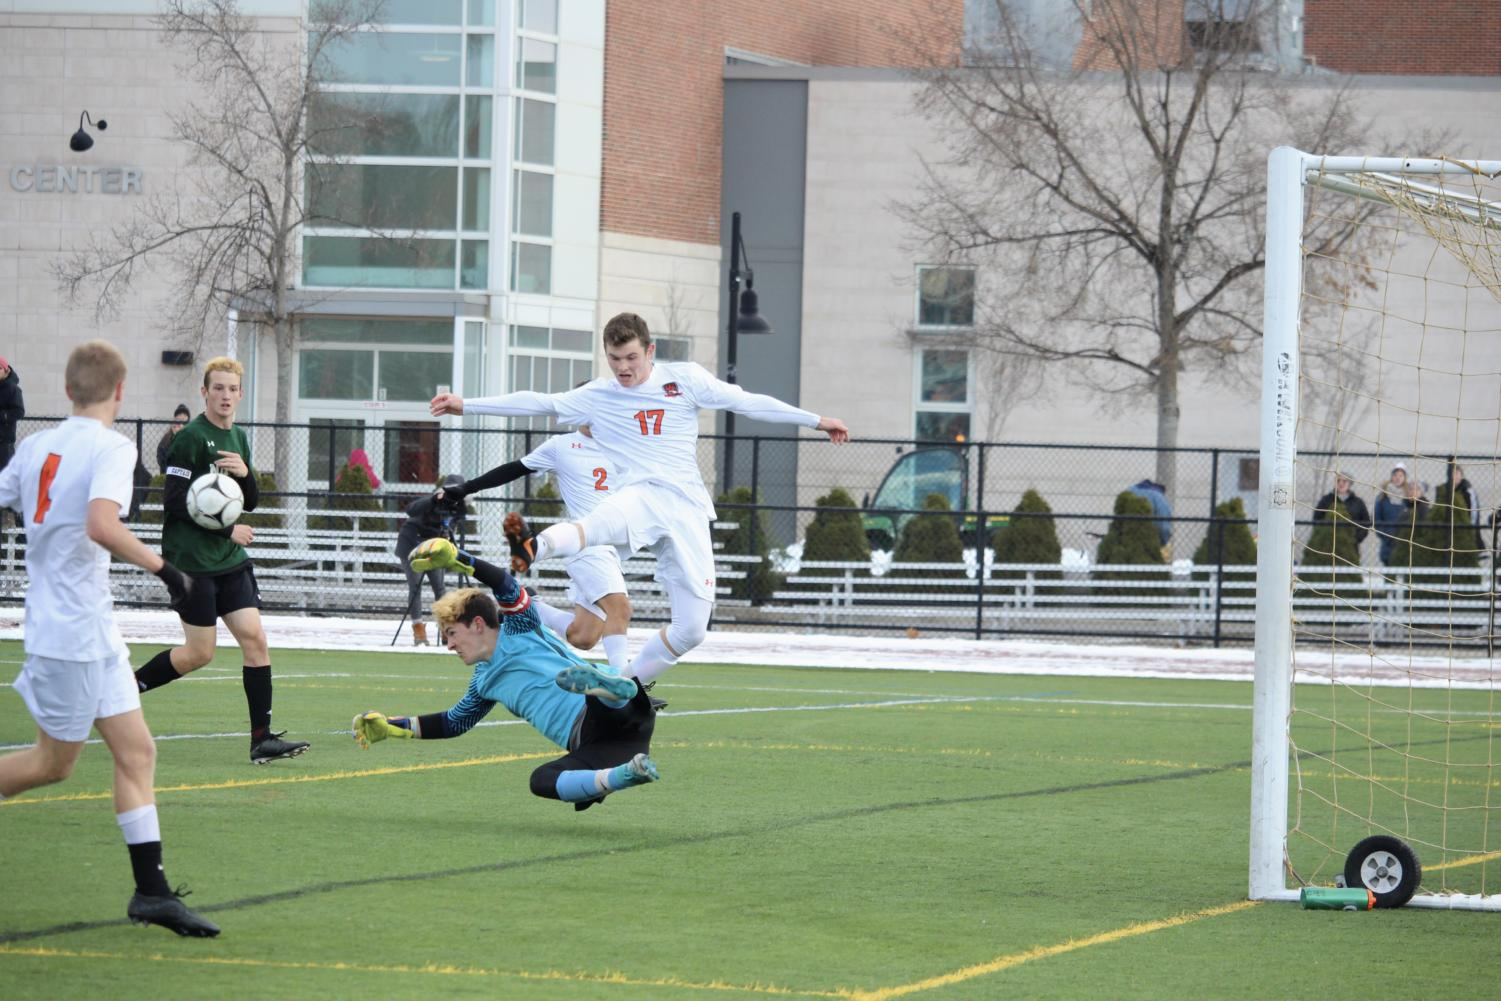 Dretler+jumps+over+the+Nipmuc+keeper+in+an+attempt+to+score.